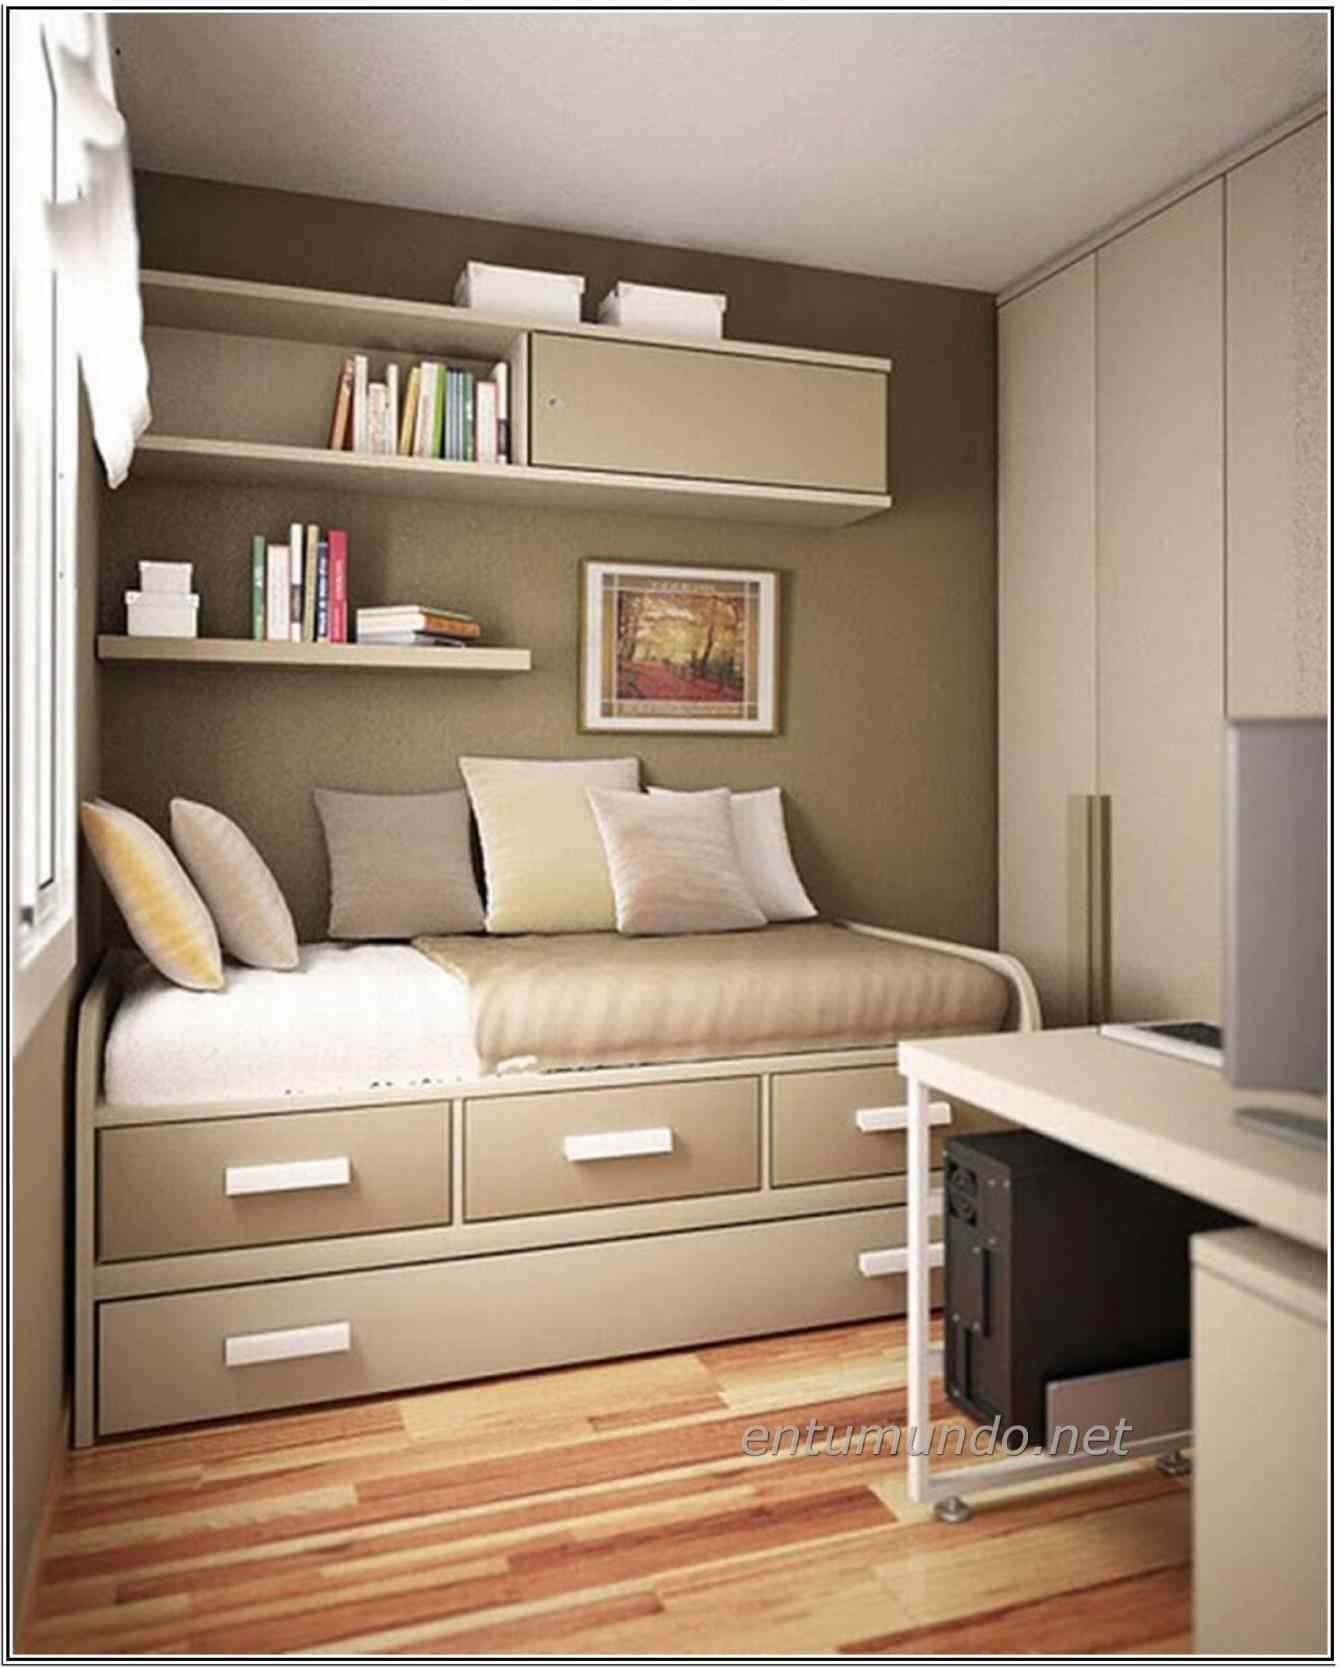 Best How To Maximize Storage Space In A Small Bedroom Breakpr With Pictures